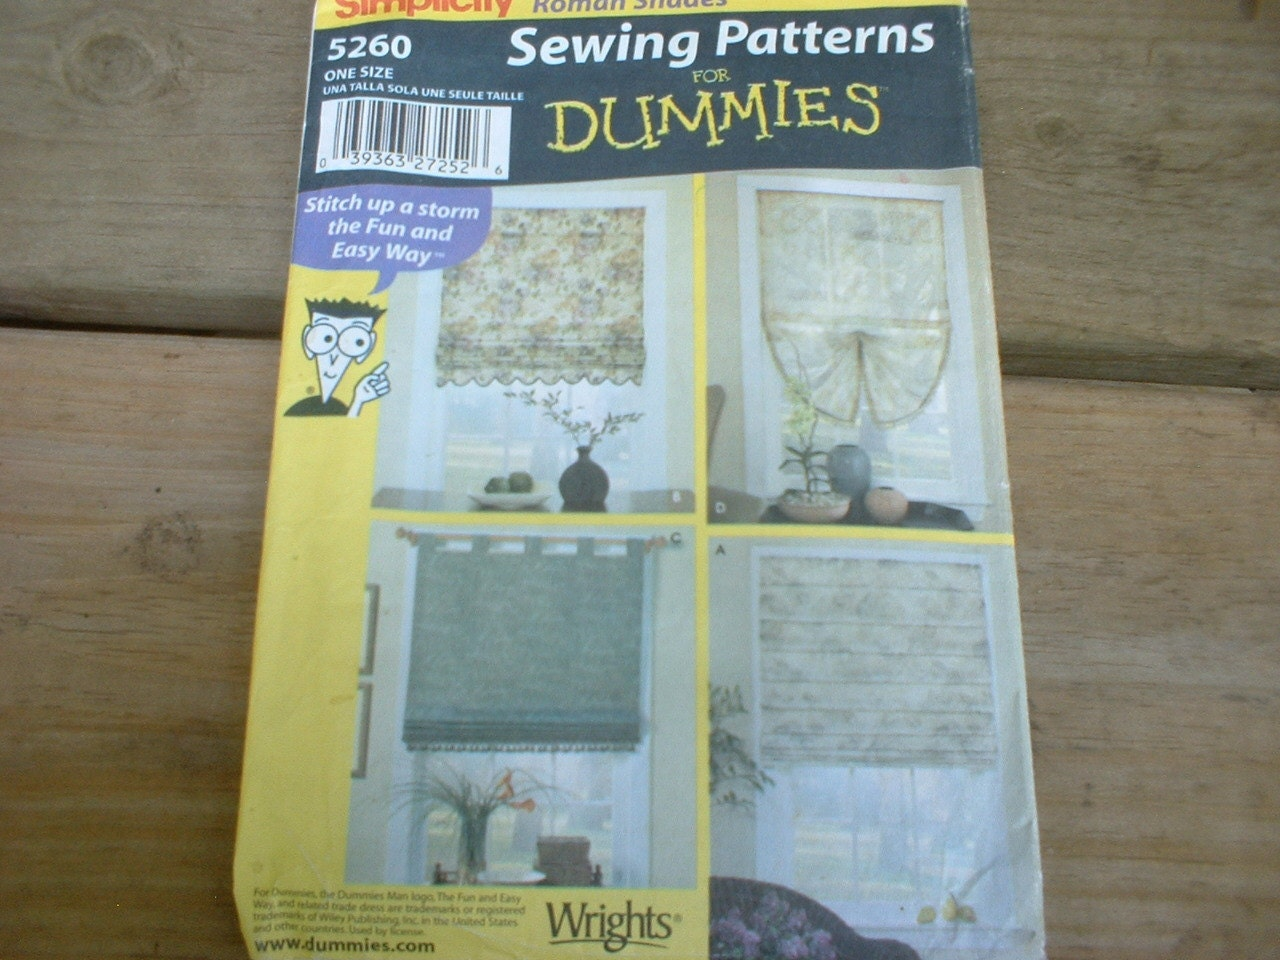 Simplicity roman shades sewing patterns for dummies from for Koi ponds for dummies